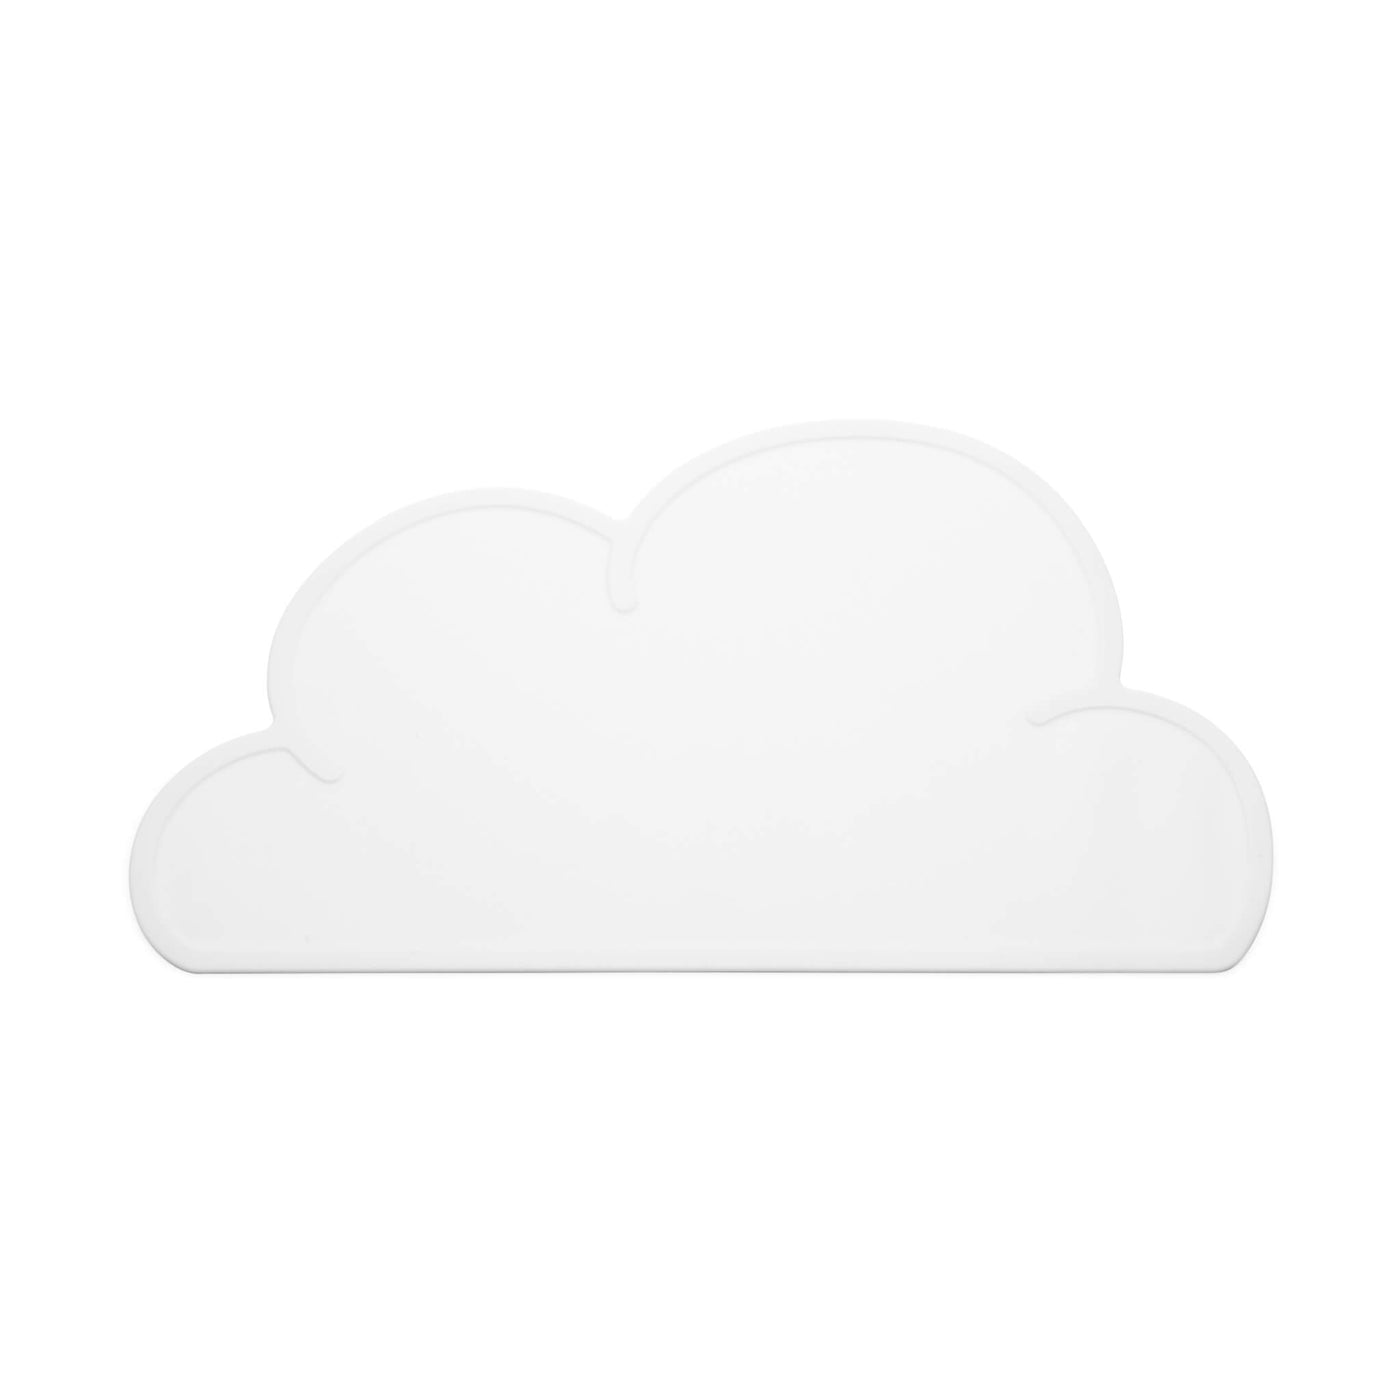 Cloud Placemat - White